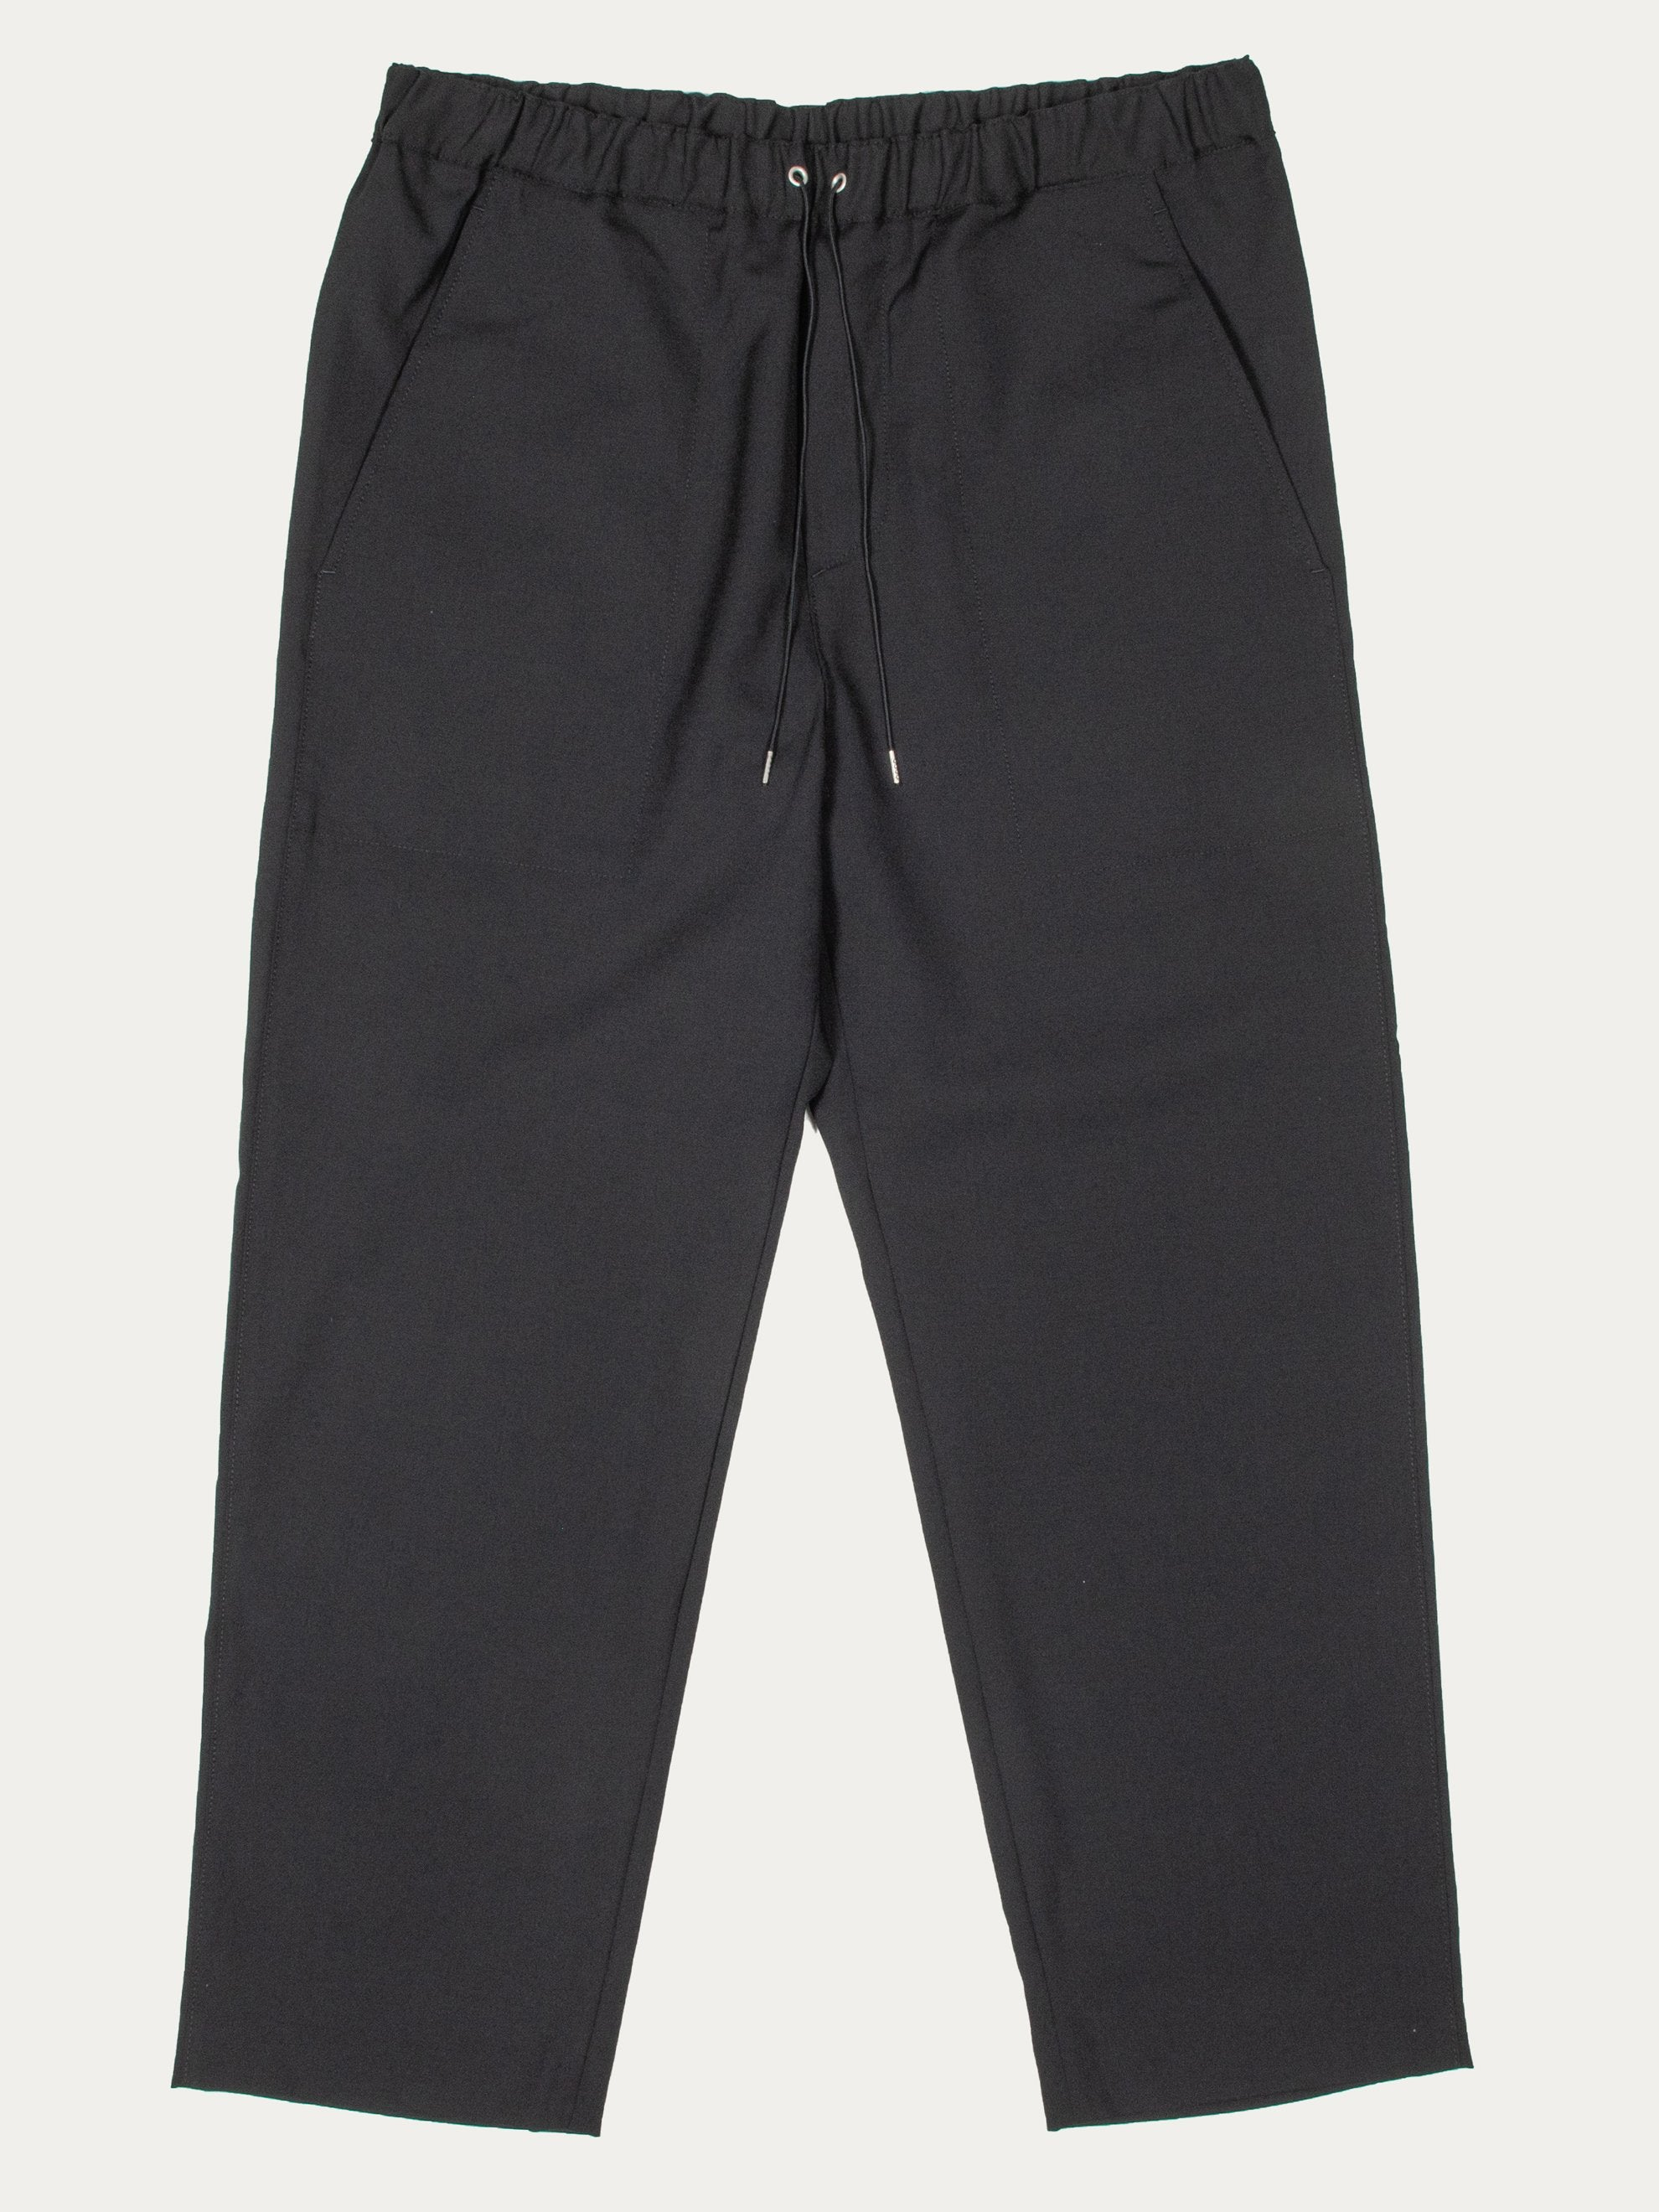 Black Drawcord Pants 1